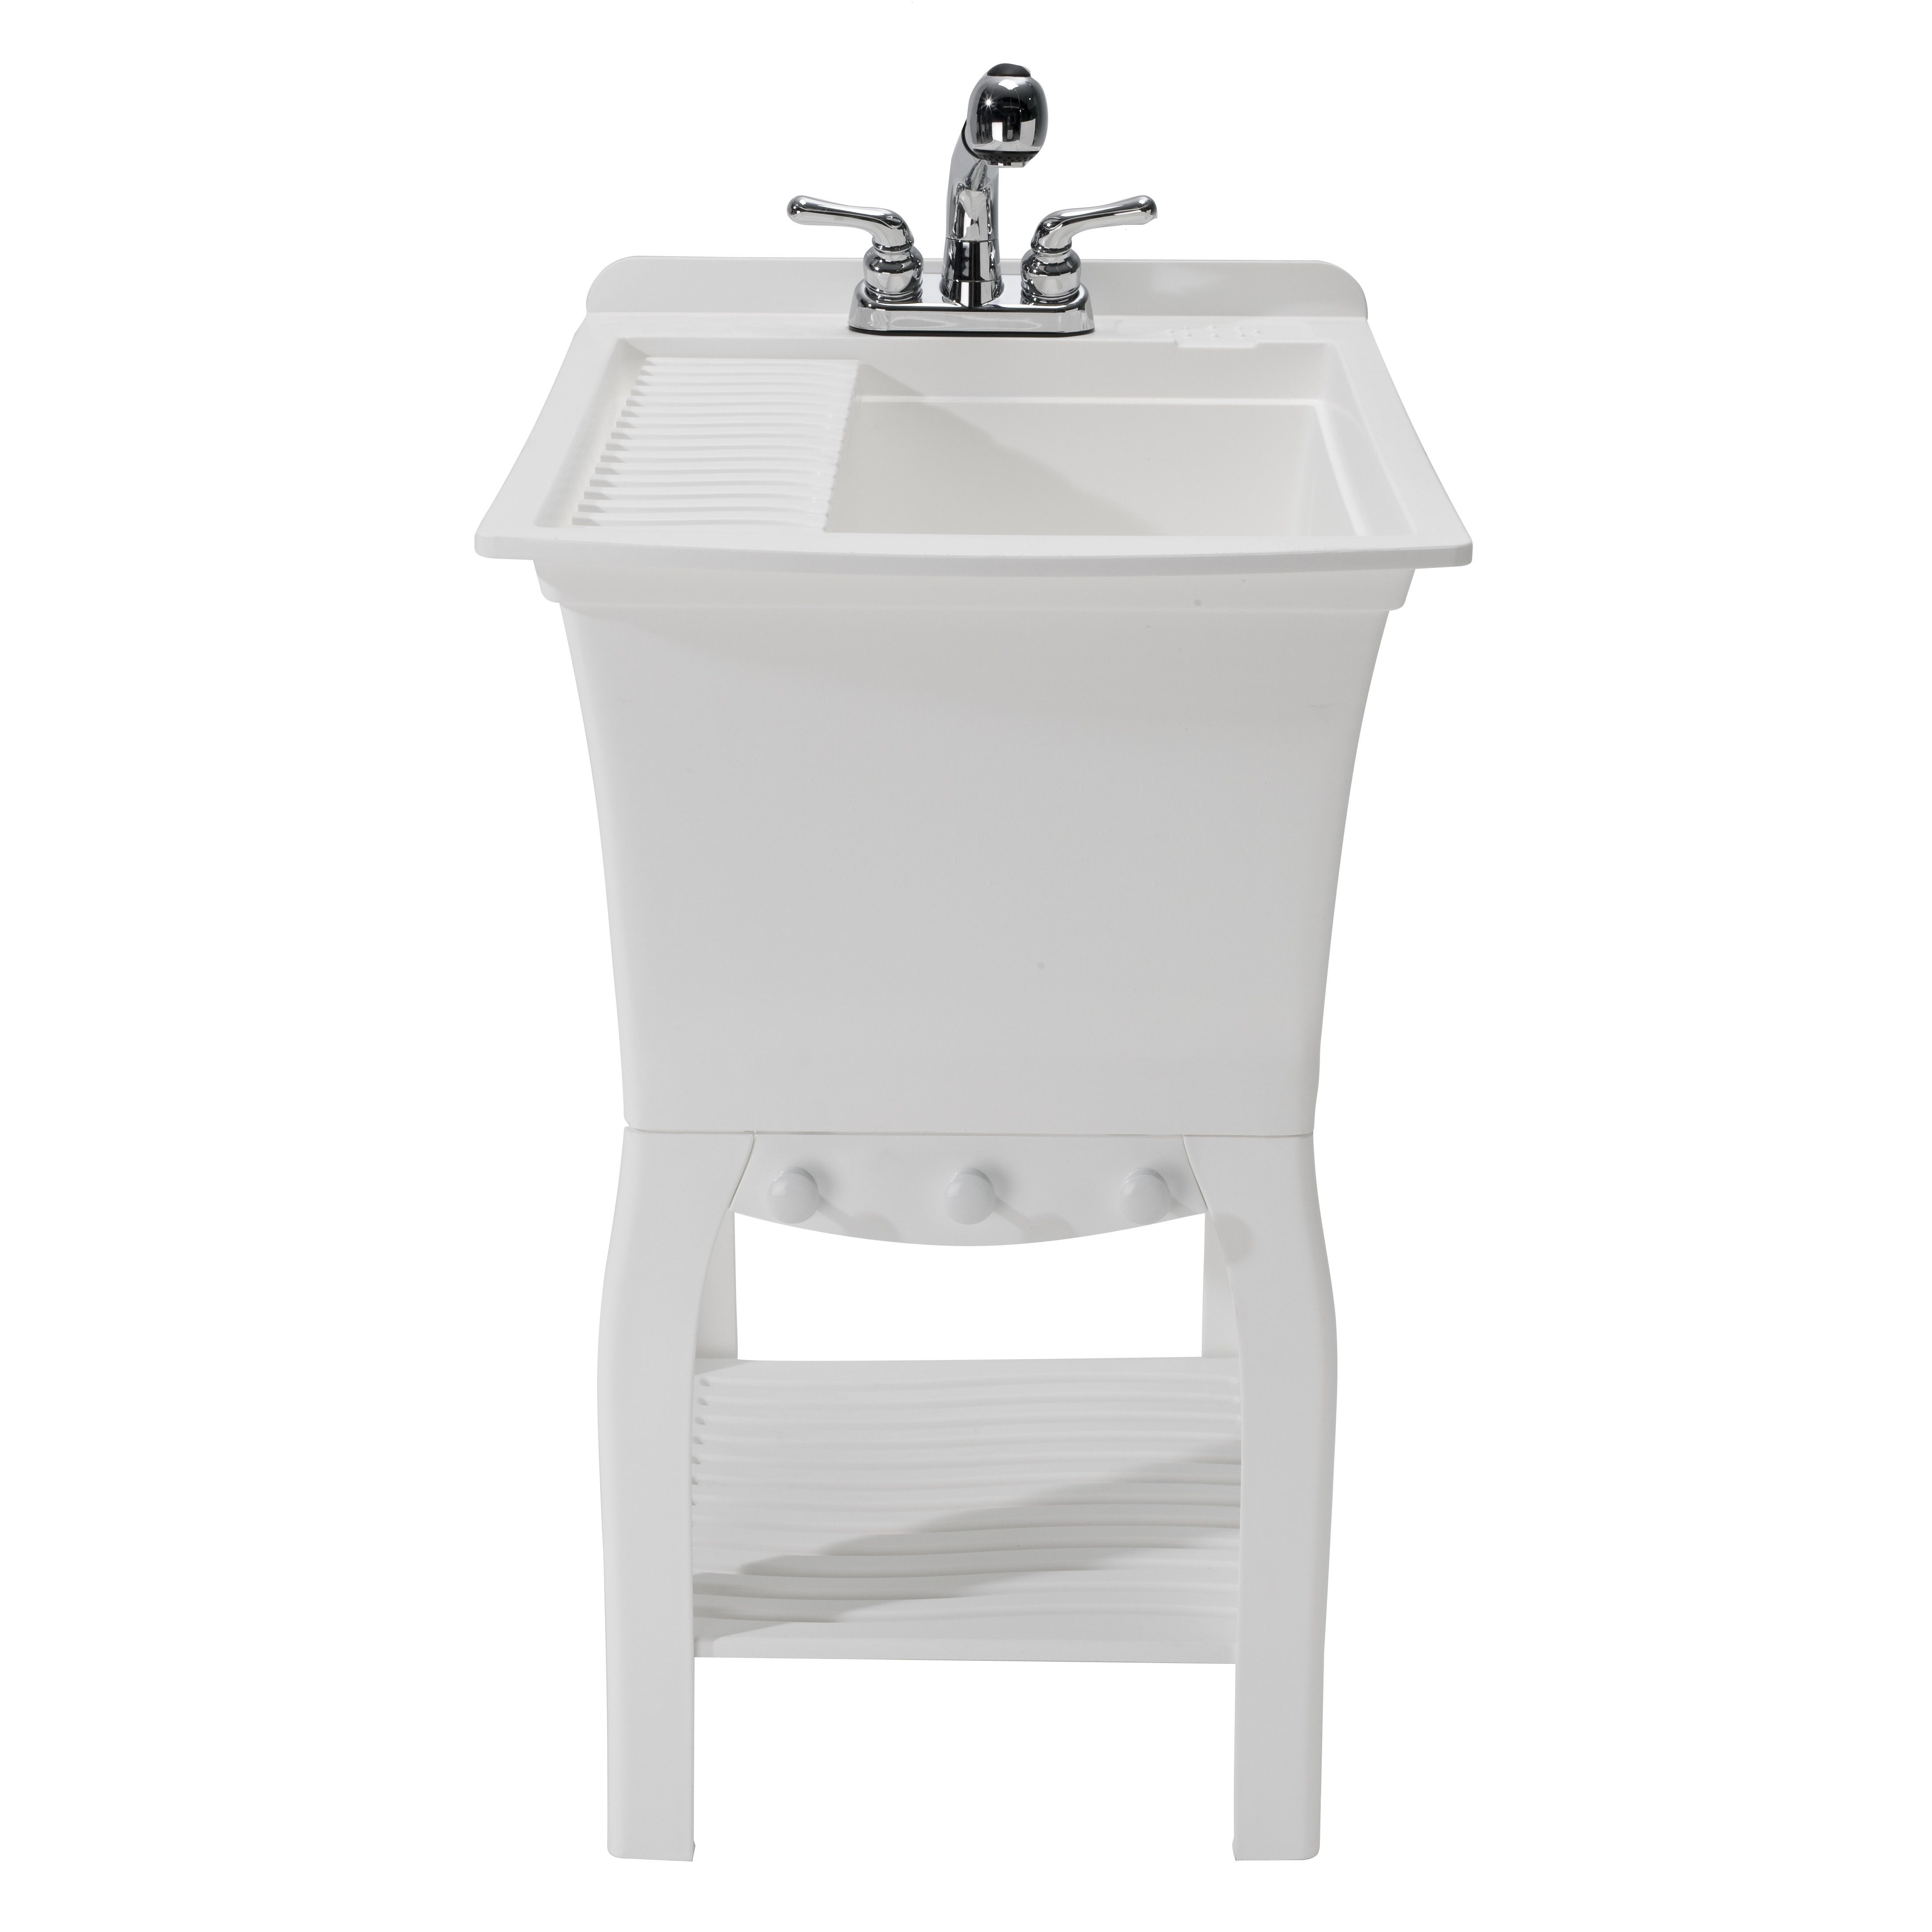 Fitz Workstation 20 5 X 25 75 Freestanding Laundry Sink With